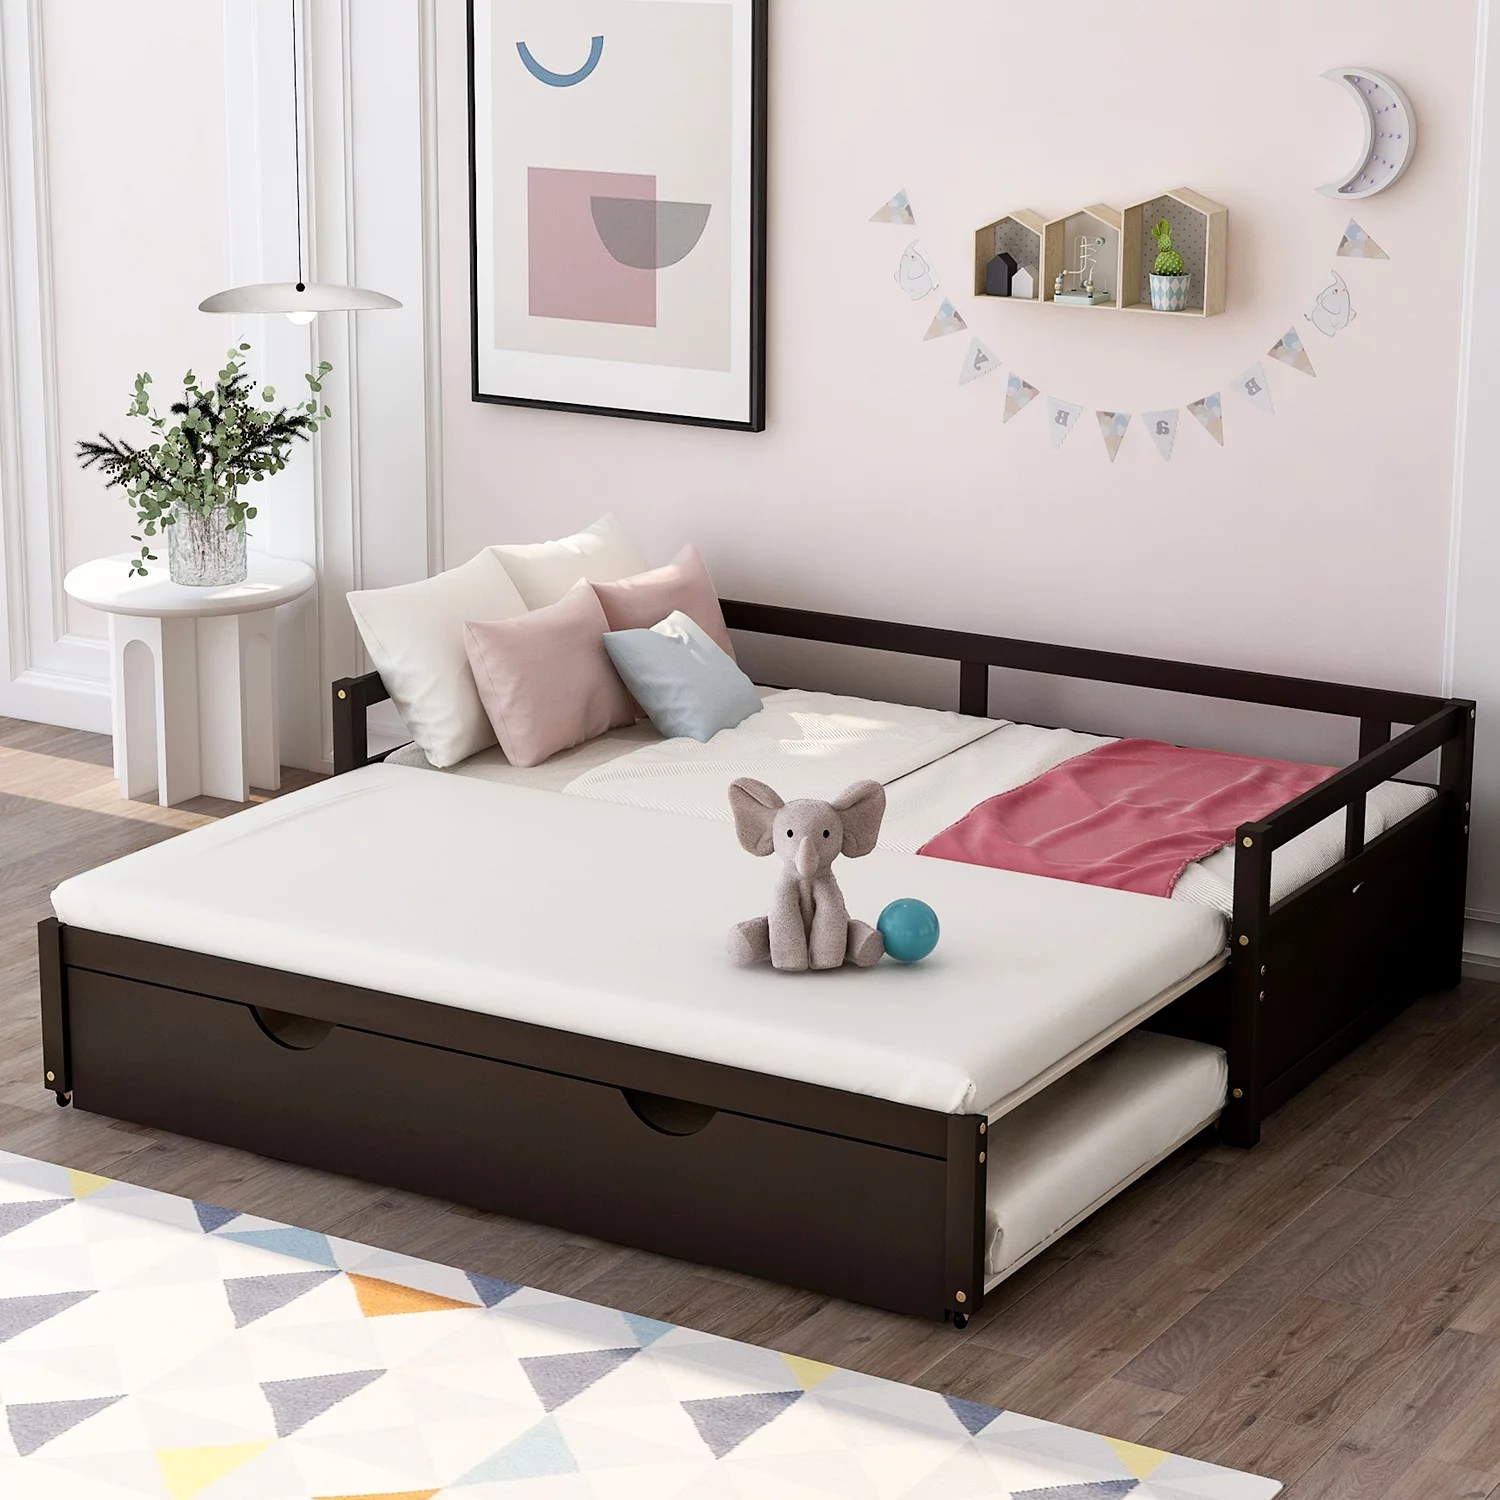 Daybed With Trundle Wooden Twin Bed For Kids Teens Space Saving Sofa Bed For Bedroom Living Room Contemporary Extending Twin Platform Trundle Daybed No Box Spring Needed Espresso A748 Walmart Com Walmart Com